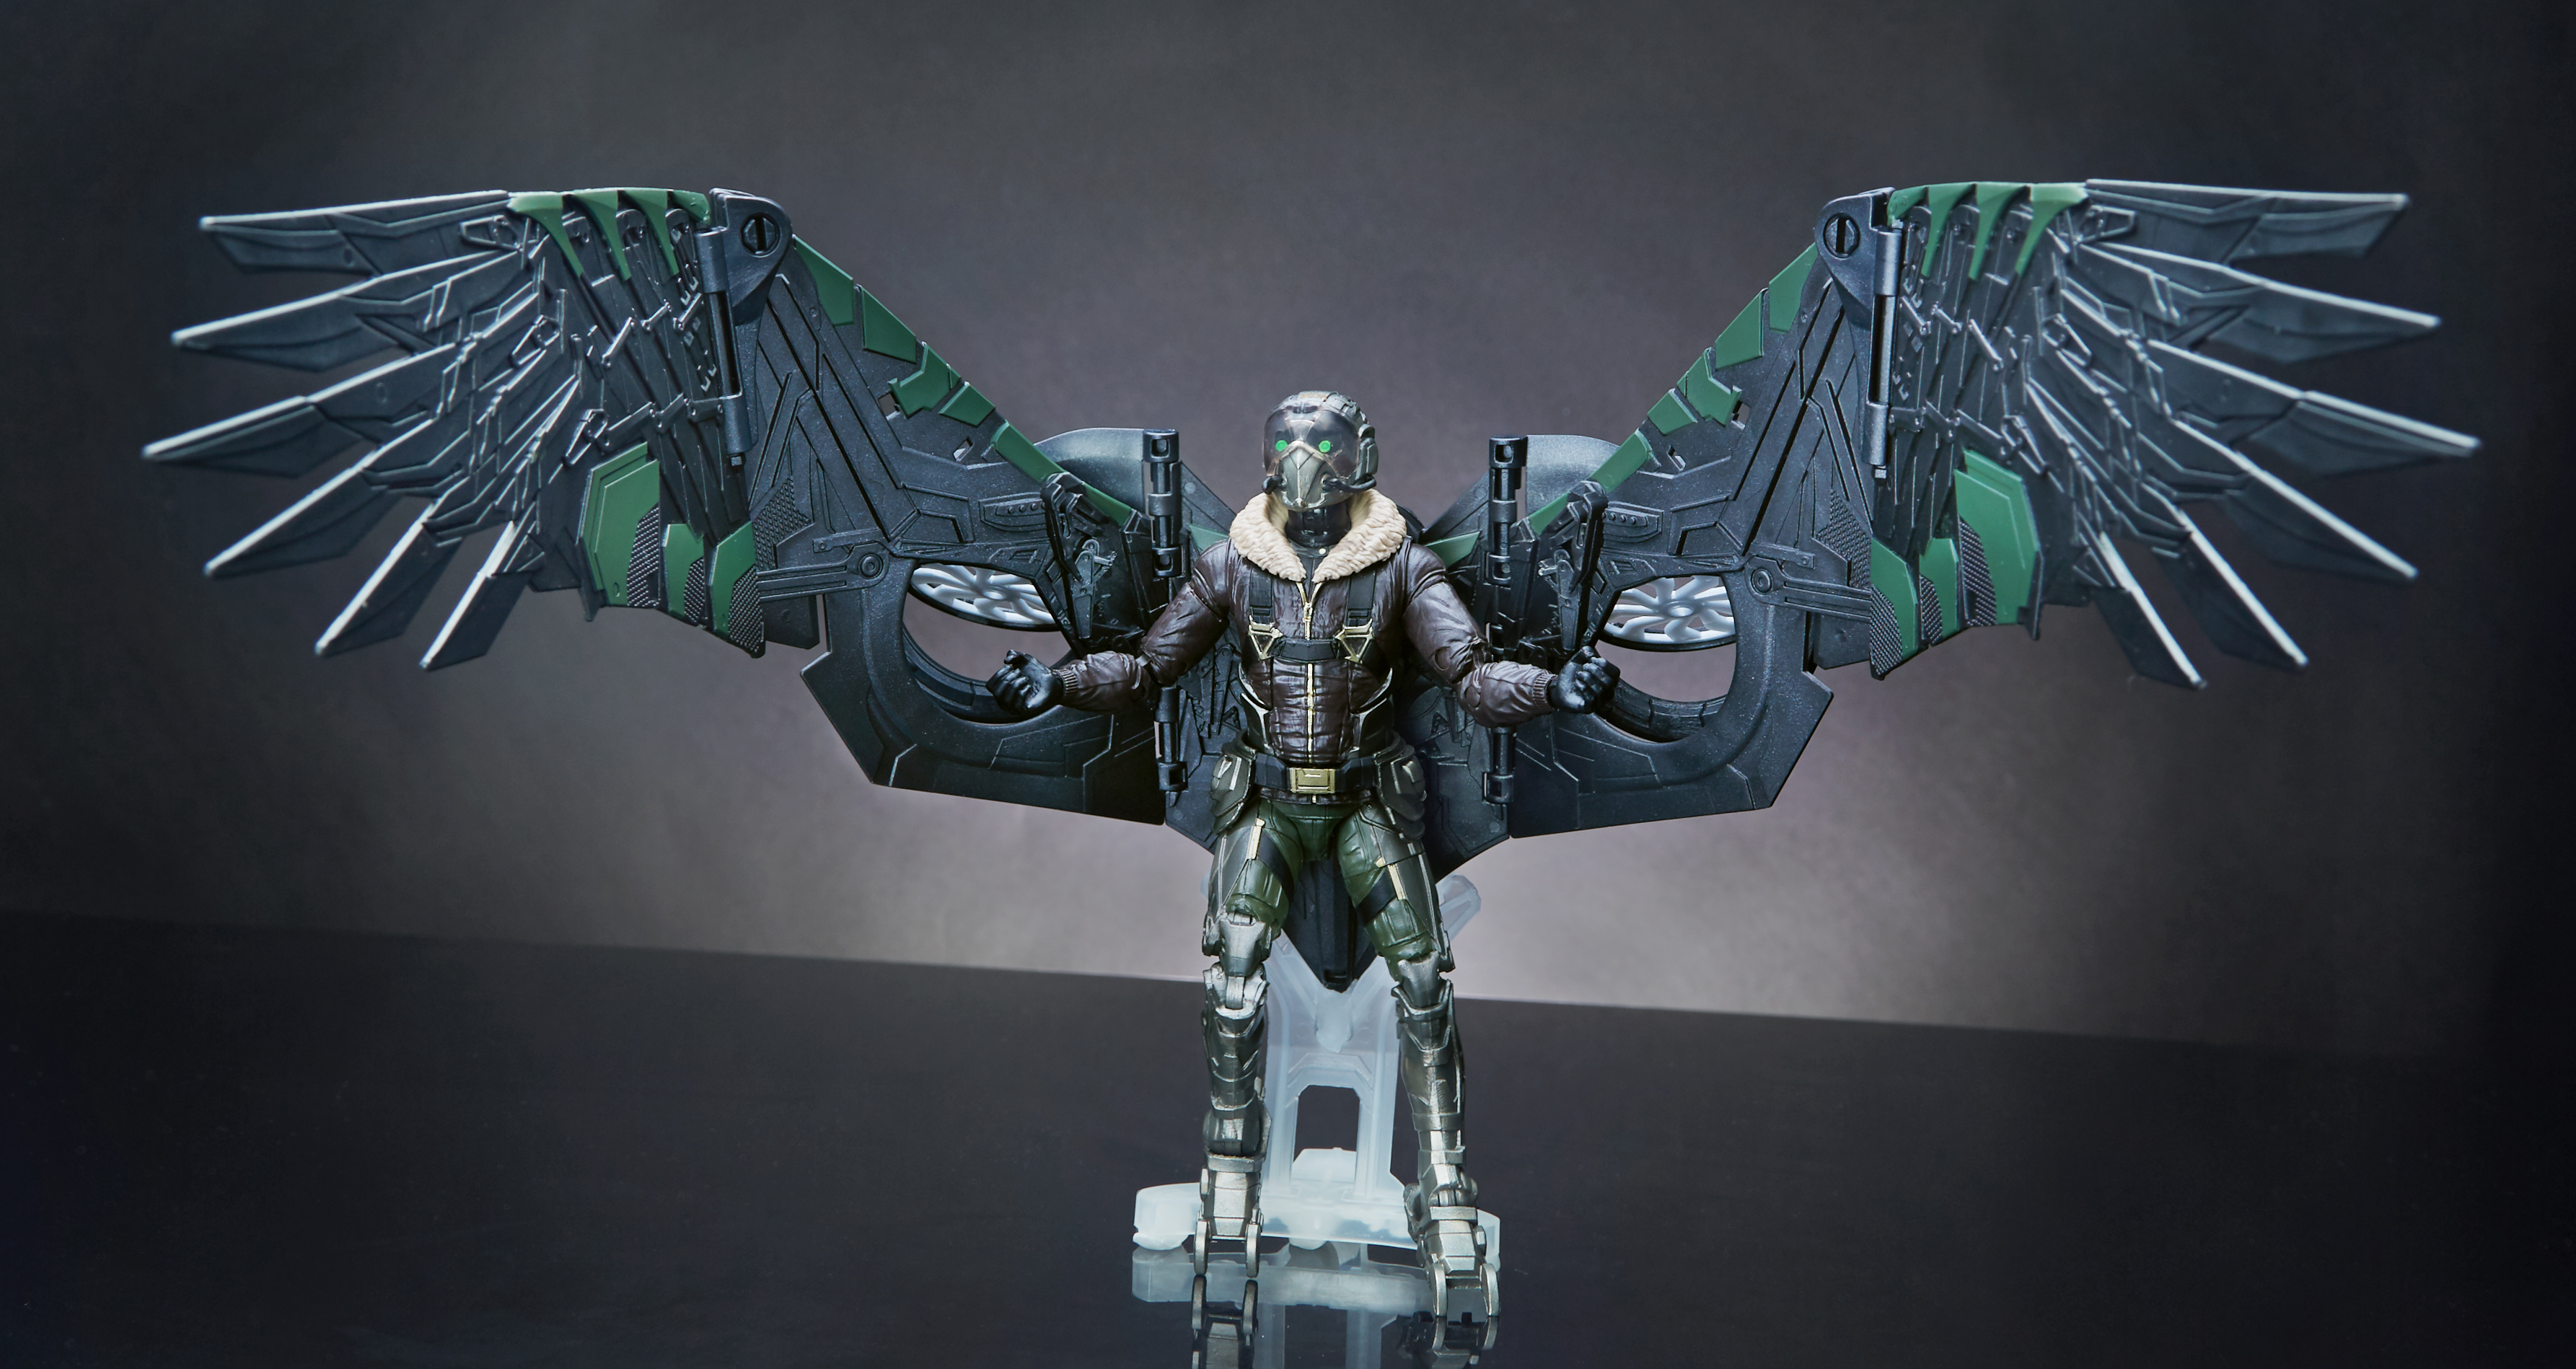 Hasbro's Vulture action figure